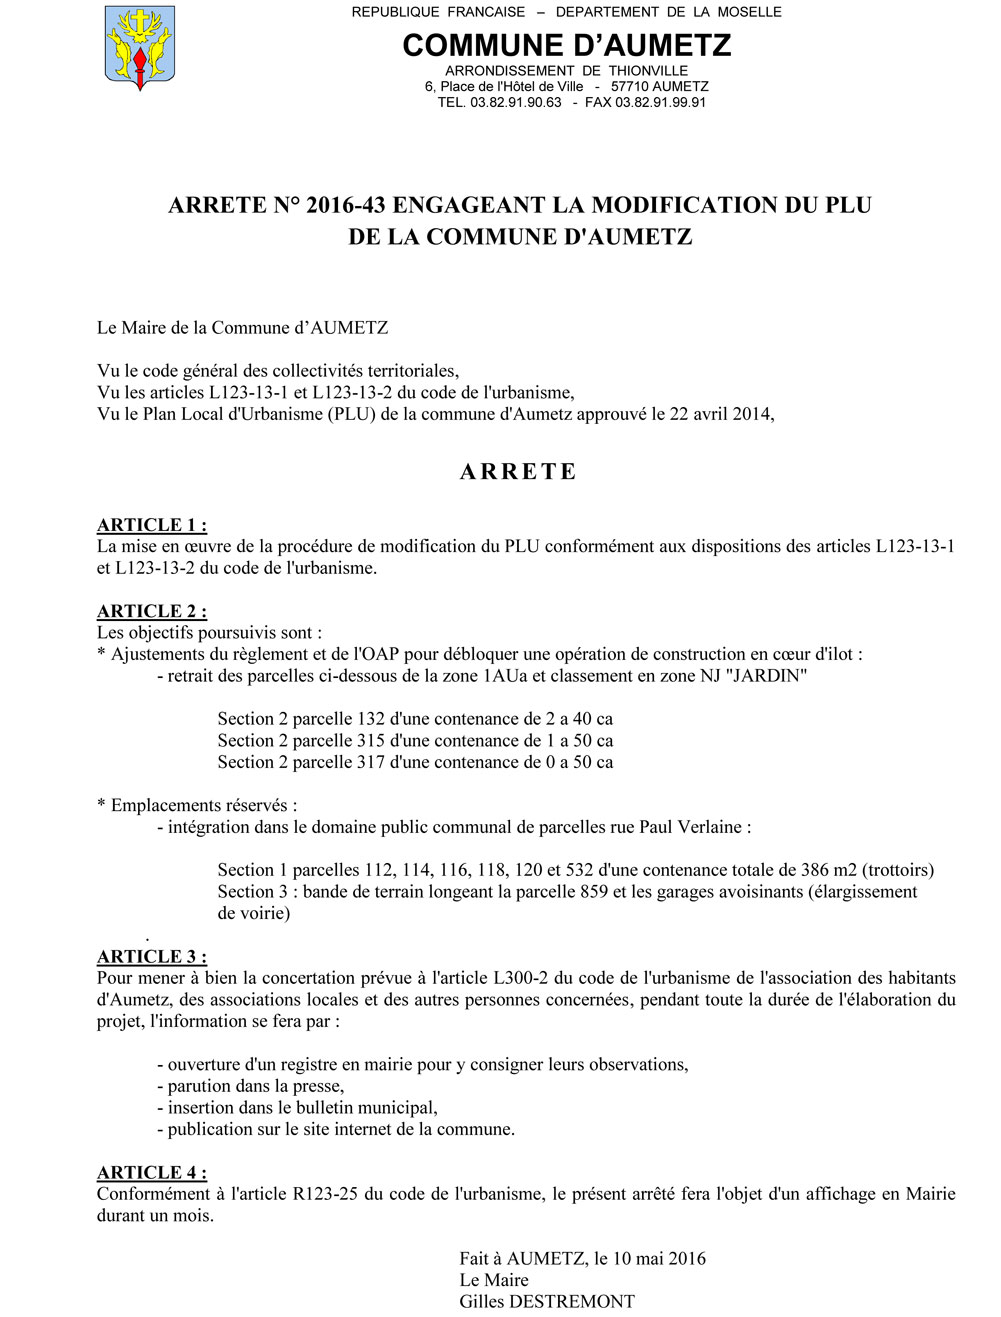 Arrete 2016 43 modification du plu 1